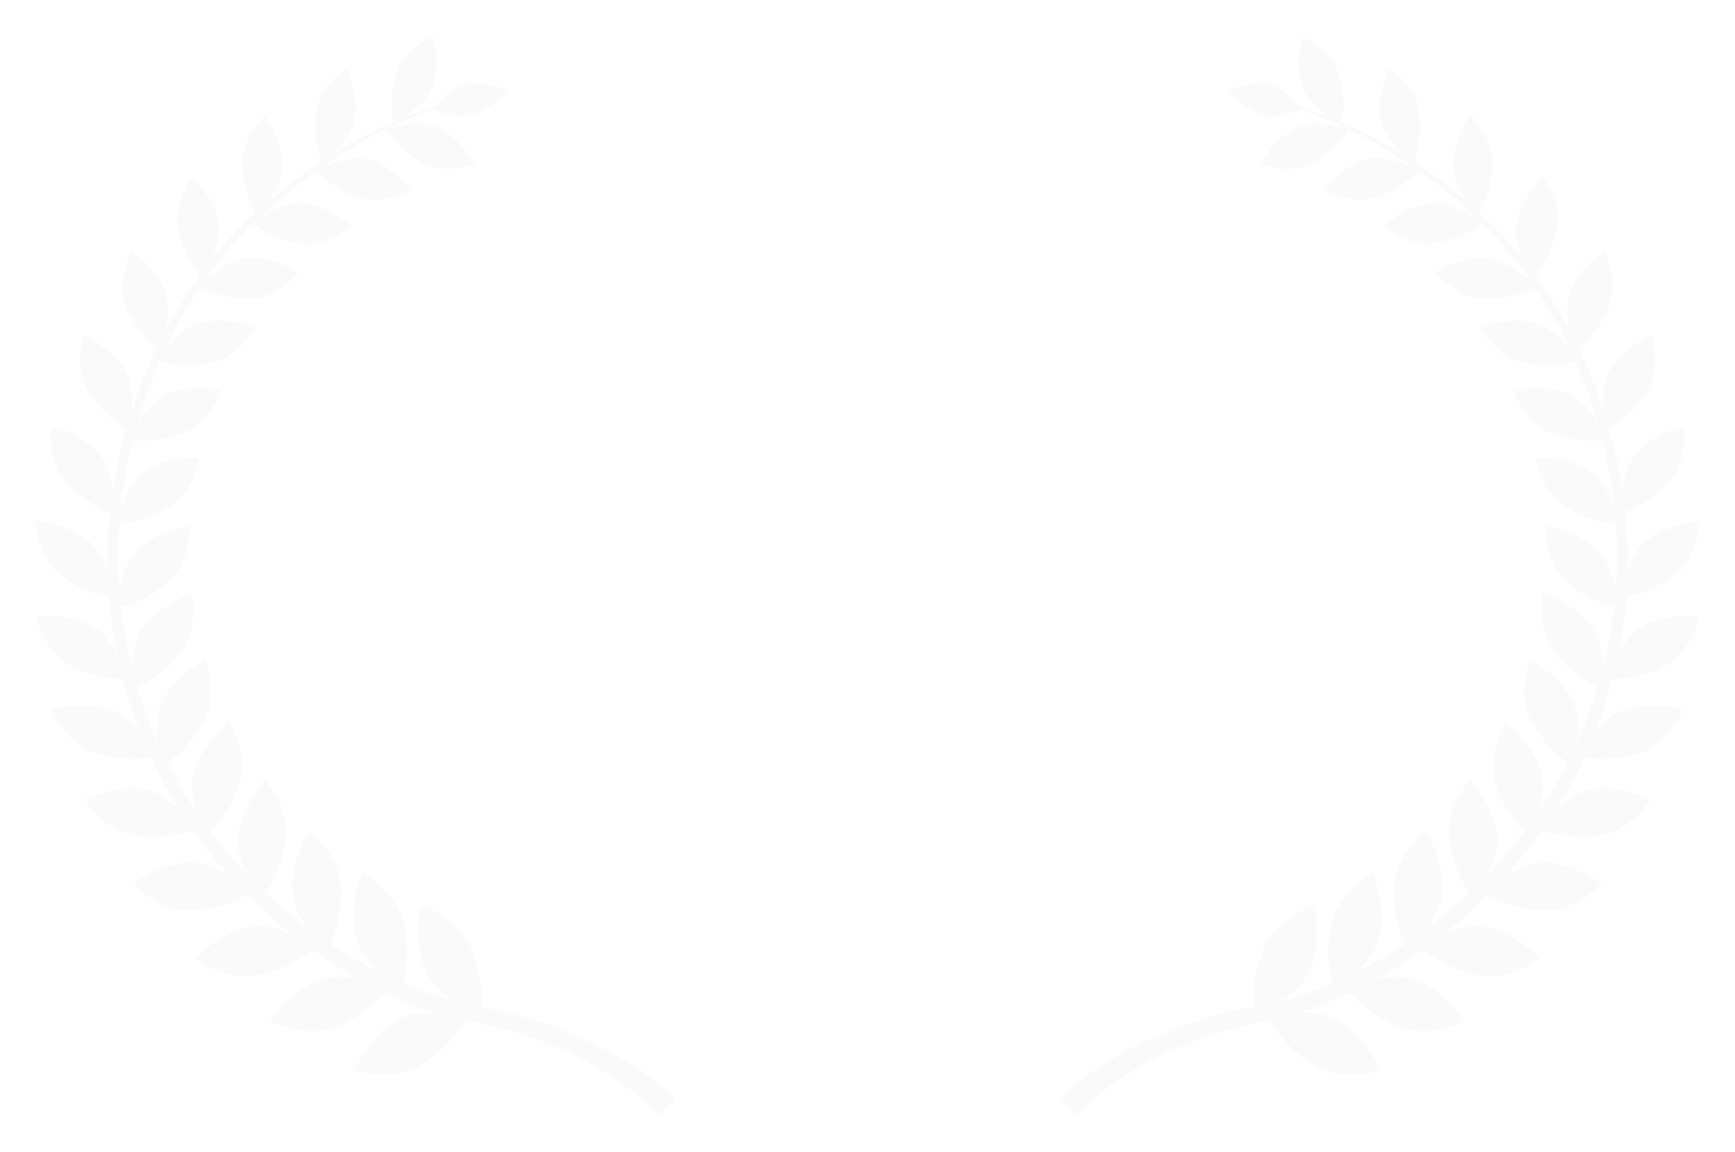 SFFILM - festival 2018.png